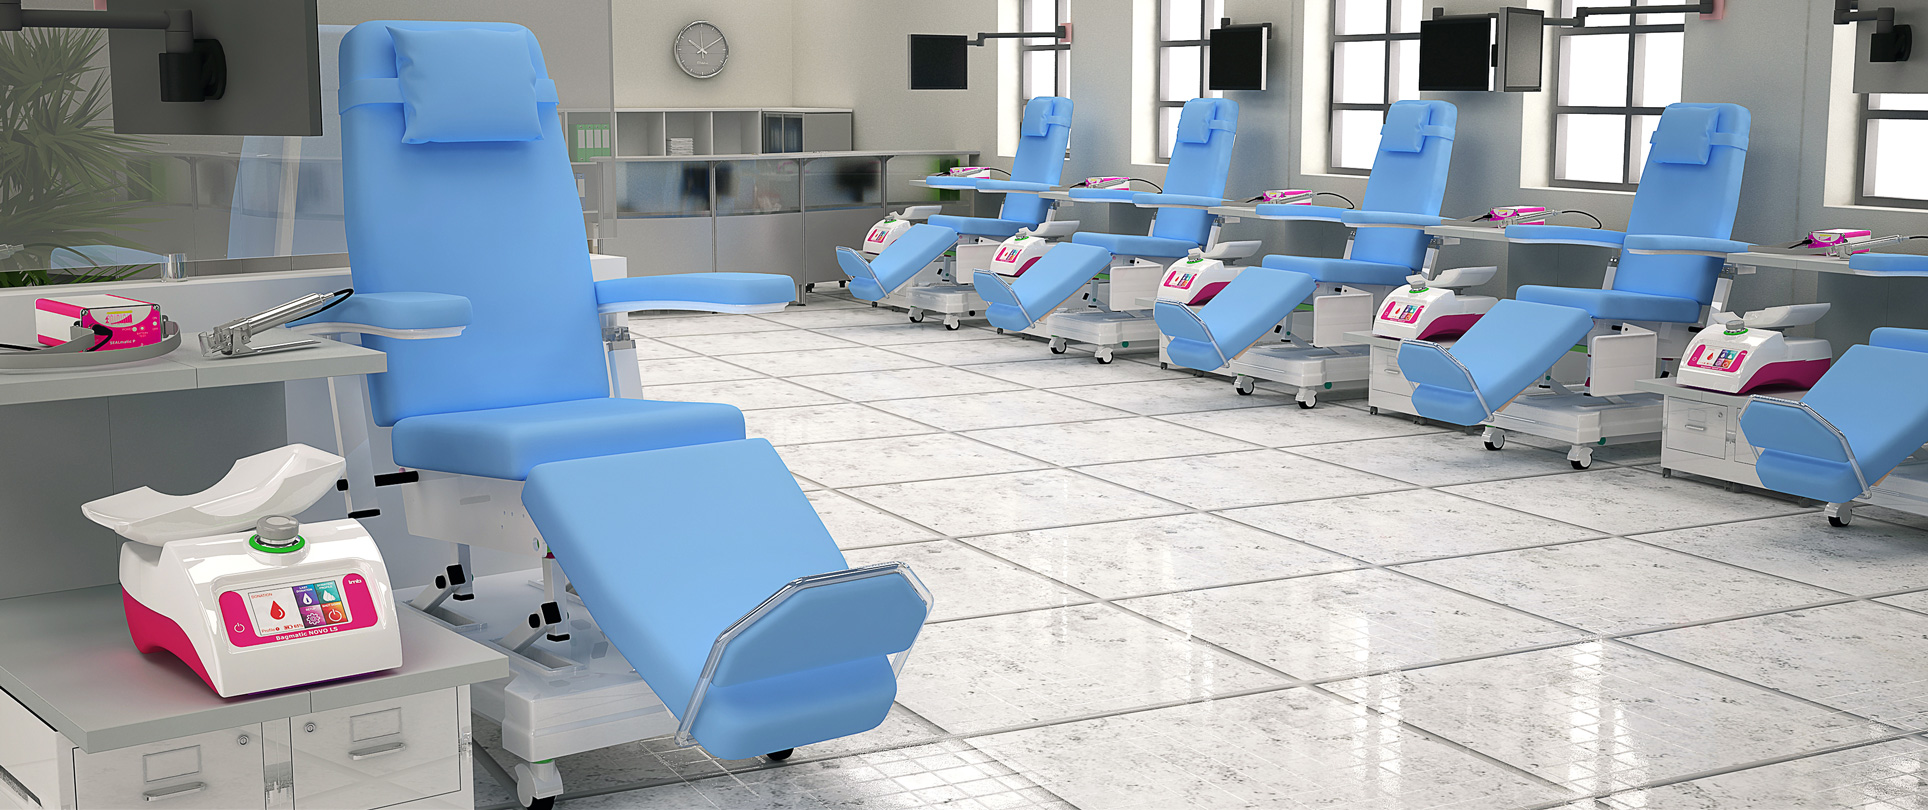 Enjoyable Donation Blood Donation Monitors Donor Lounges Tube Gmtry Best Dining Table And Chair Ideas Images Gmtryco